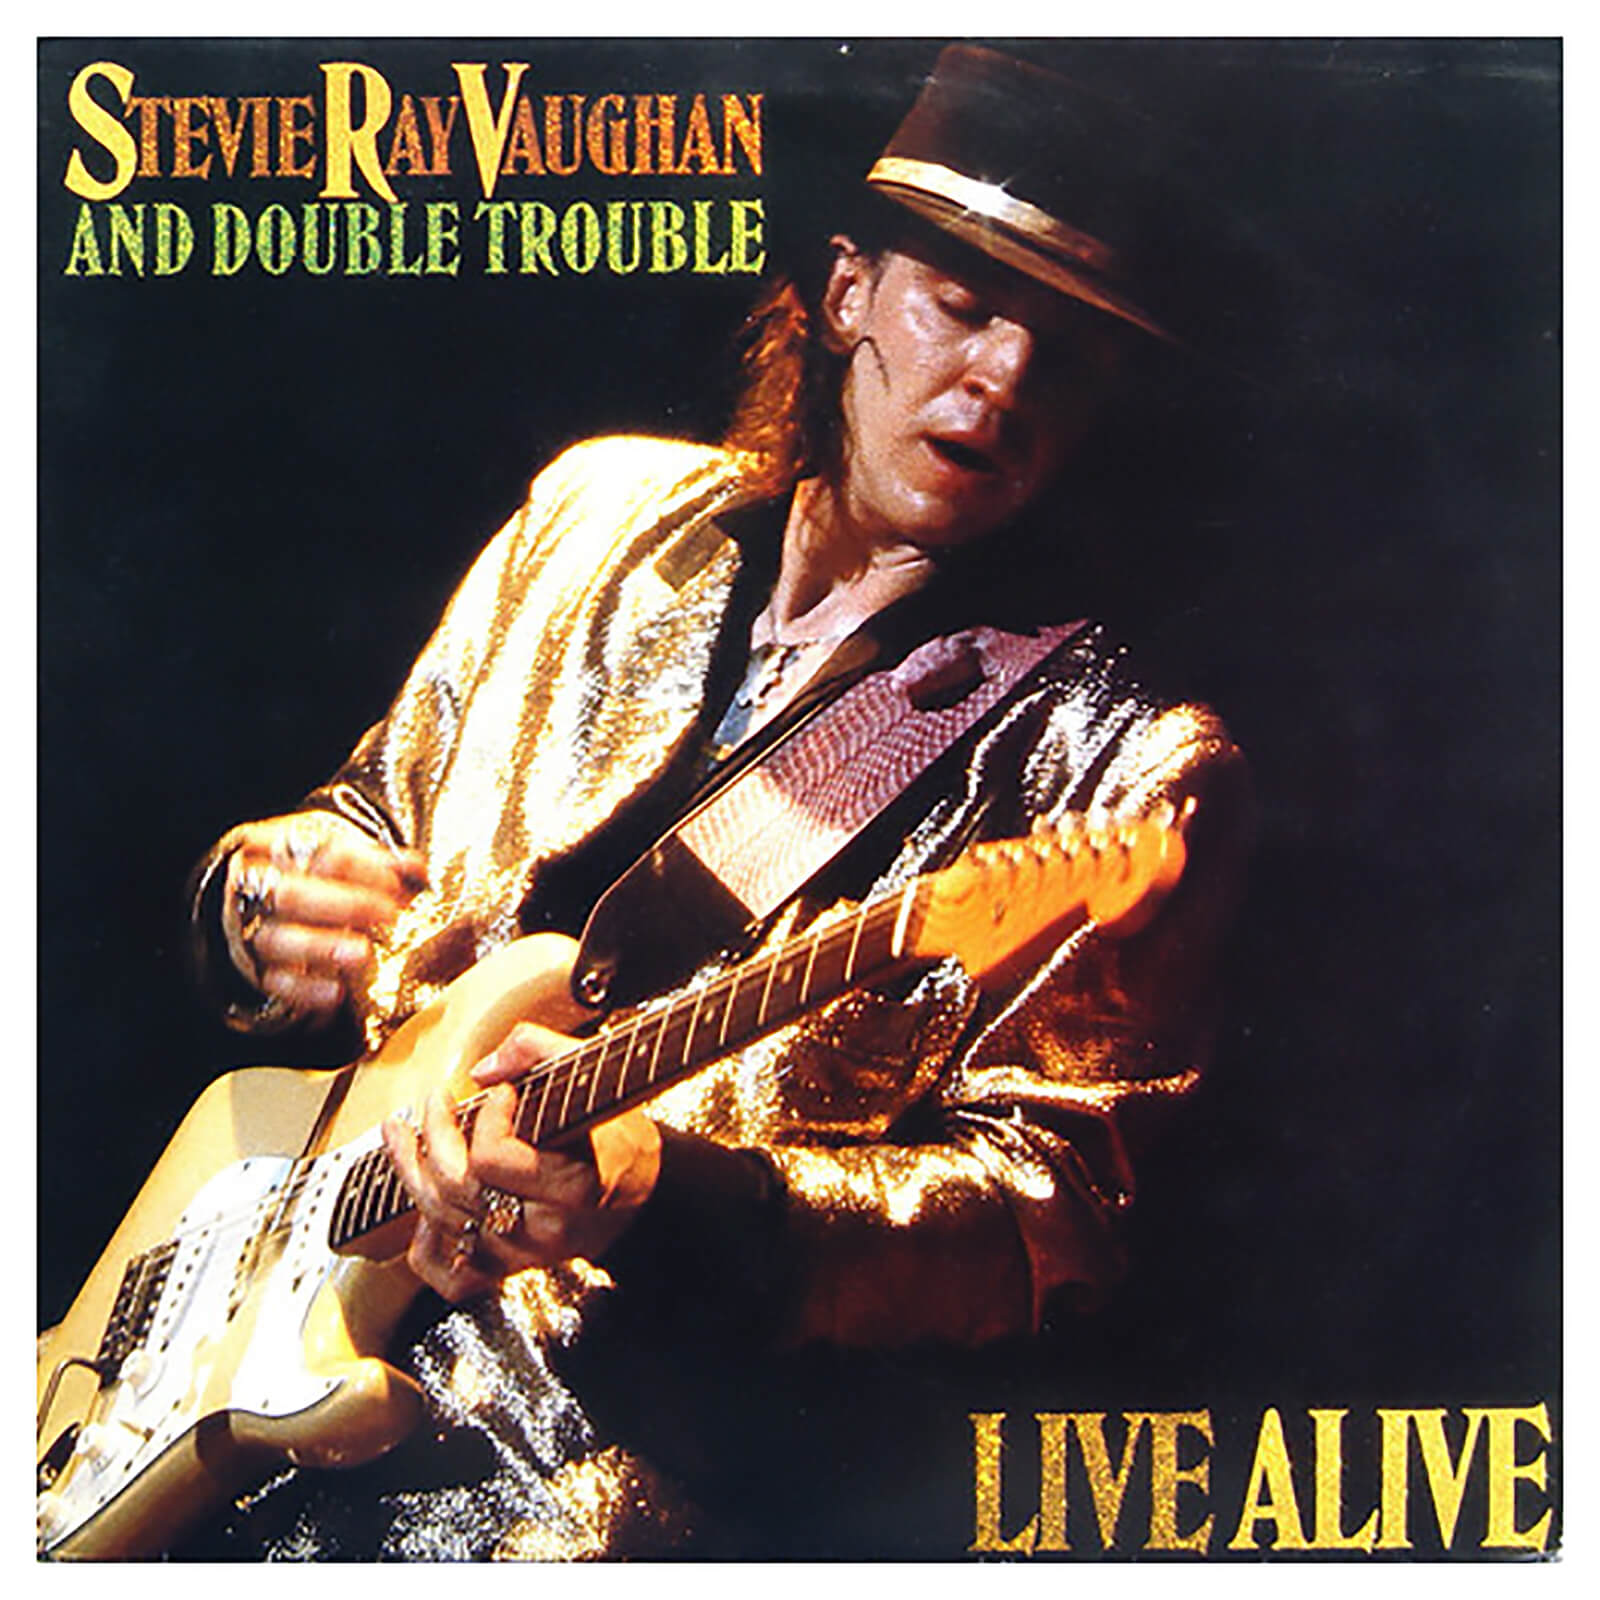 Stevie Ray Vaughan - Live Alive - Vinyl